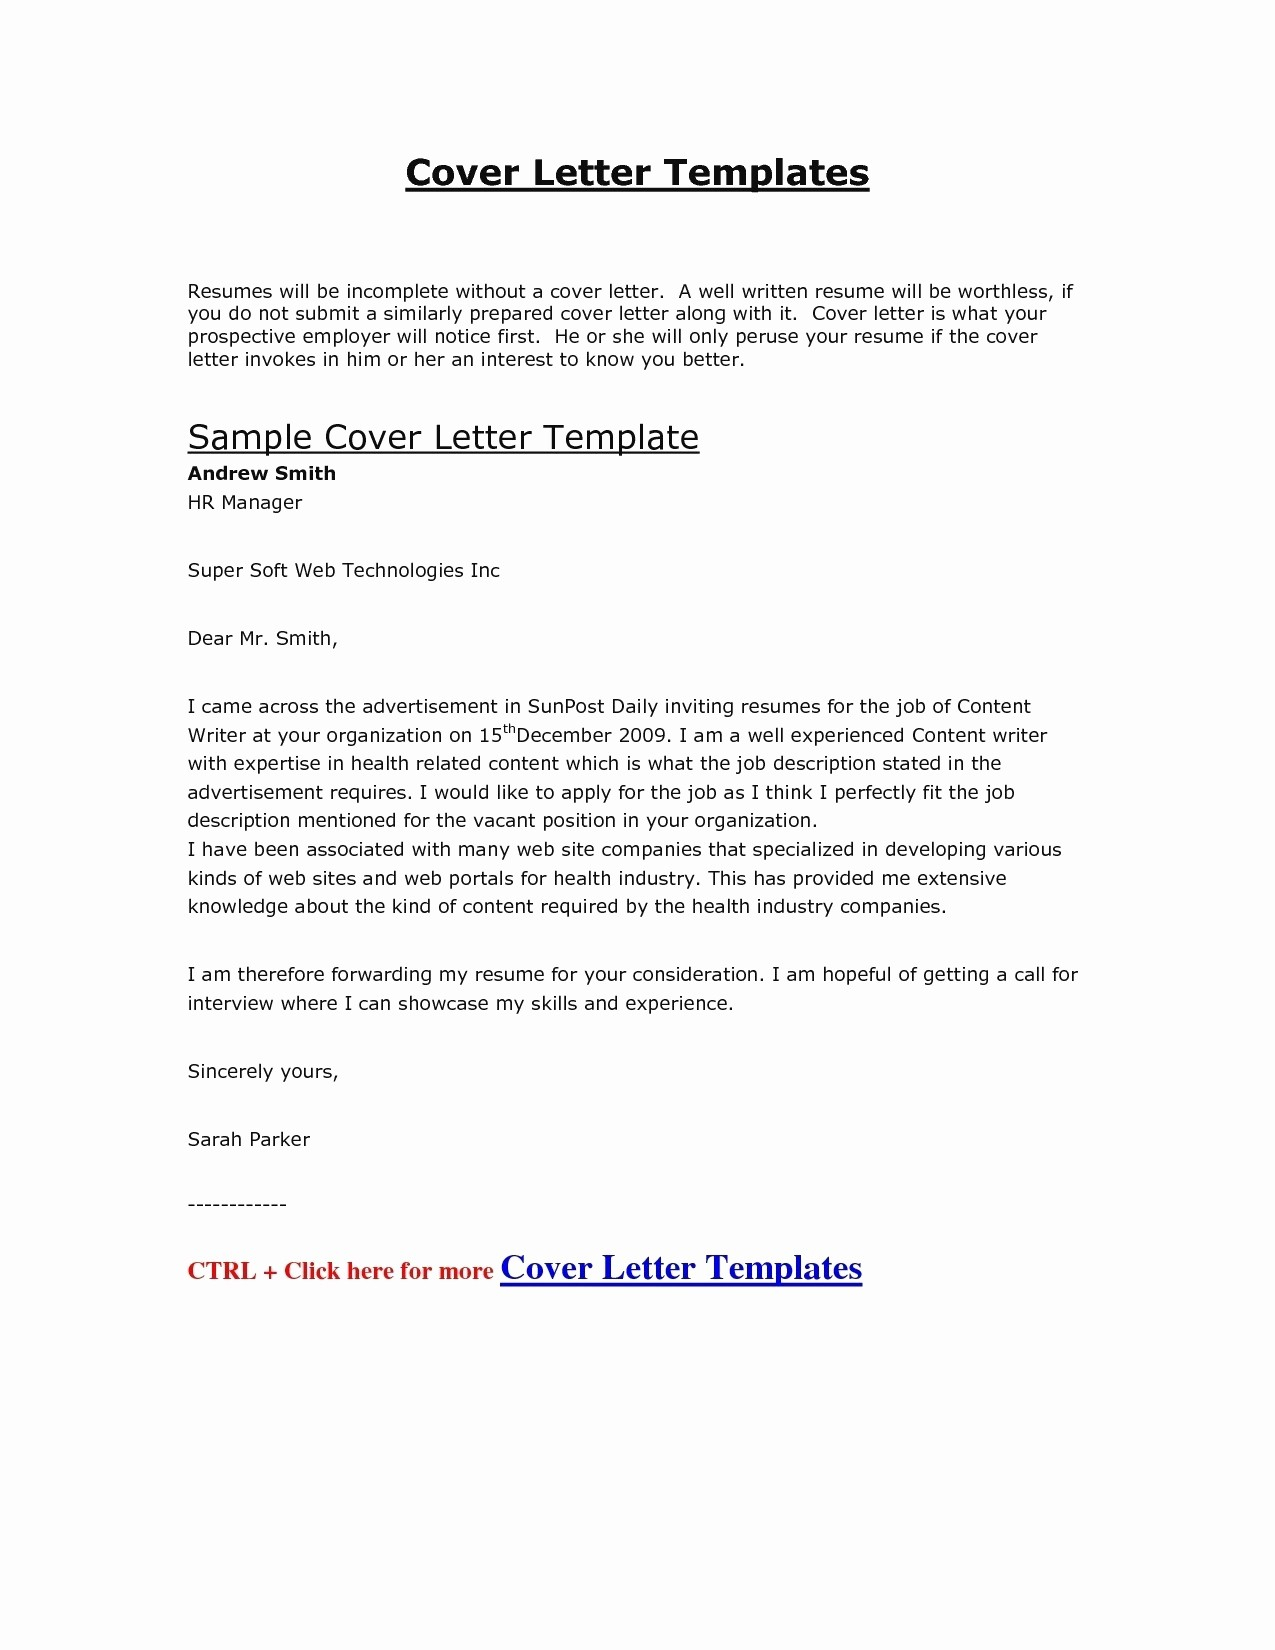 Free Cover Letter Template for Job Application - A Good Cover Letter Examples Cover Letter Sample Free and Resume